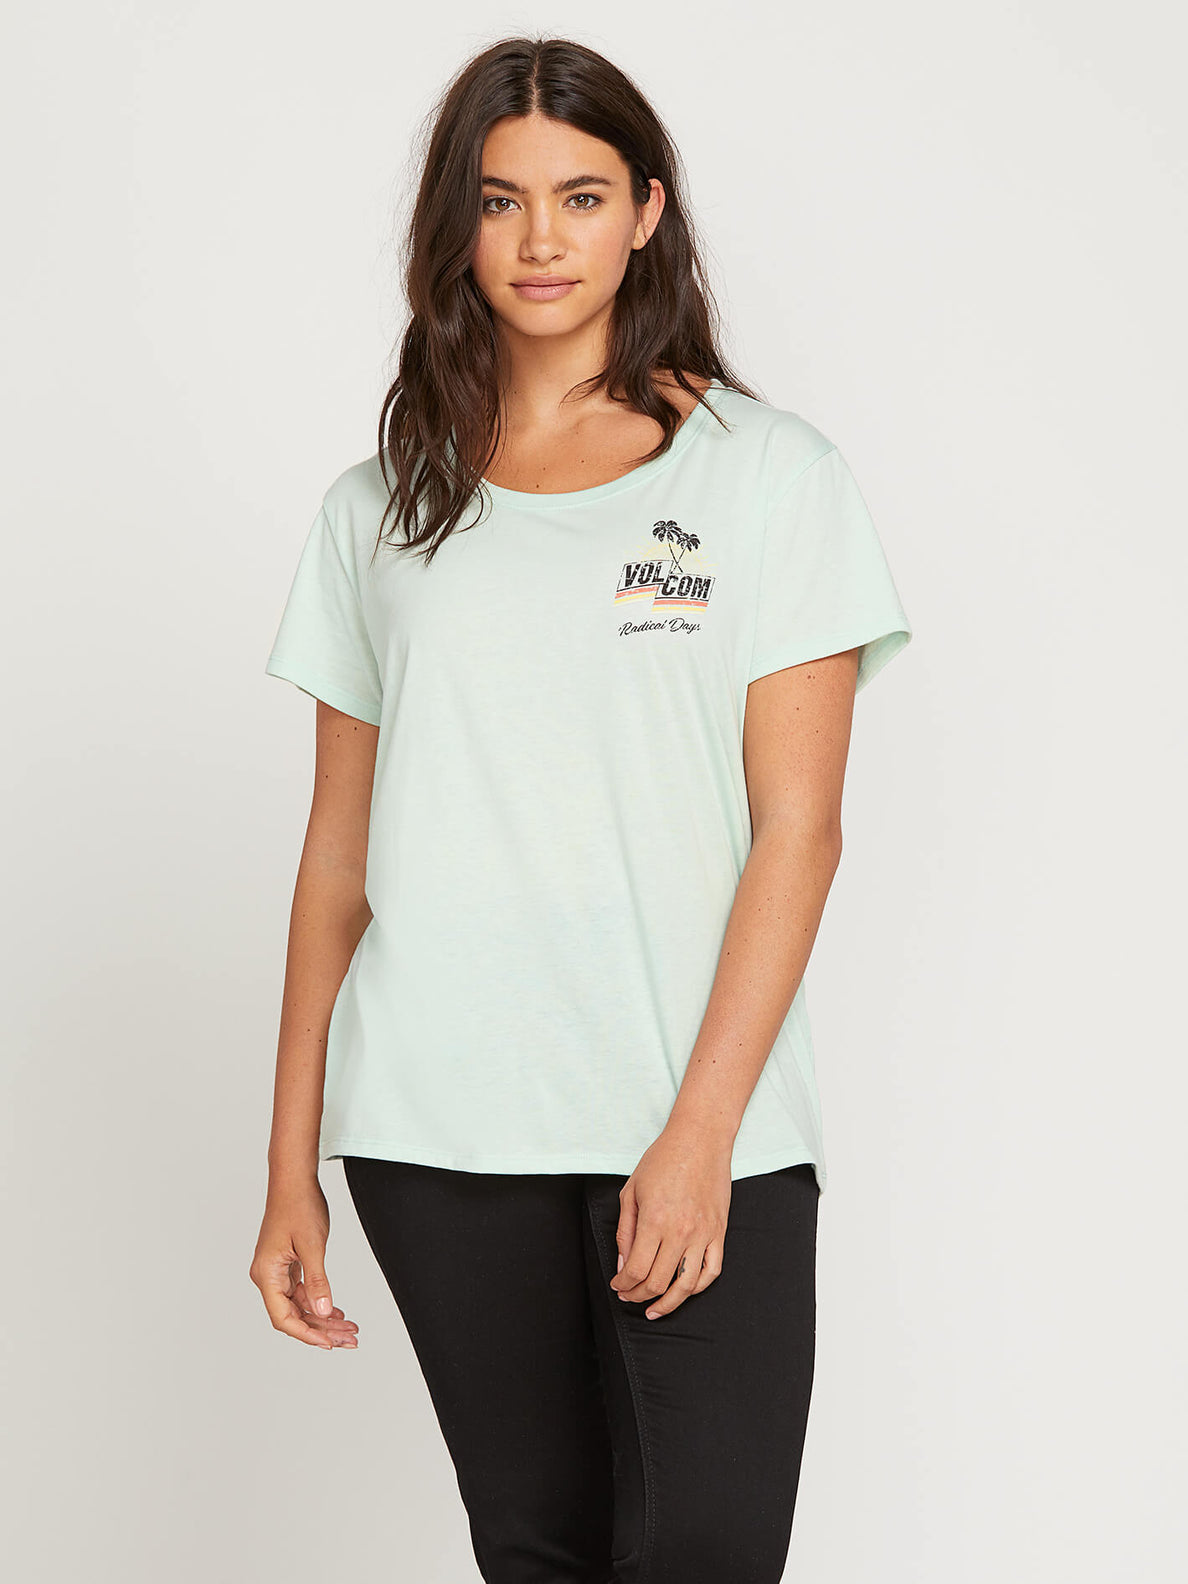 Easy Babe Rad 2 Tee In Mint, Front Extended Size View